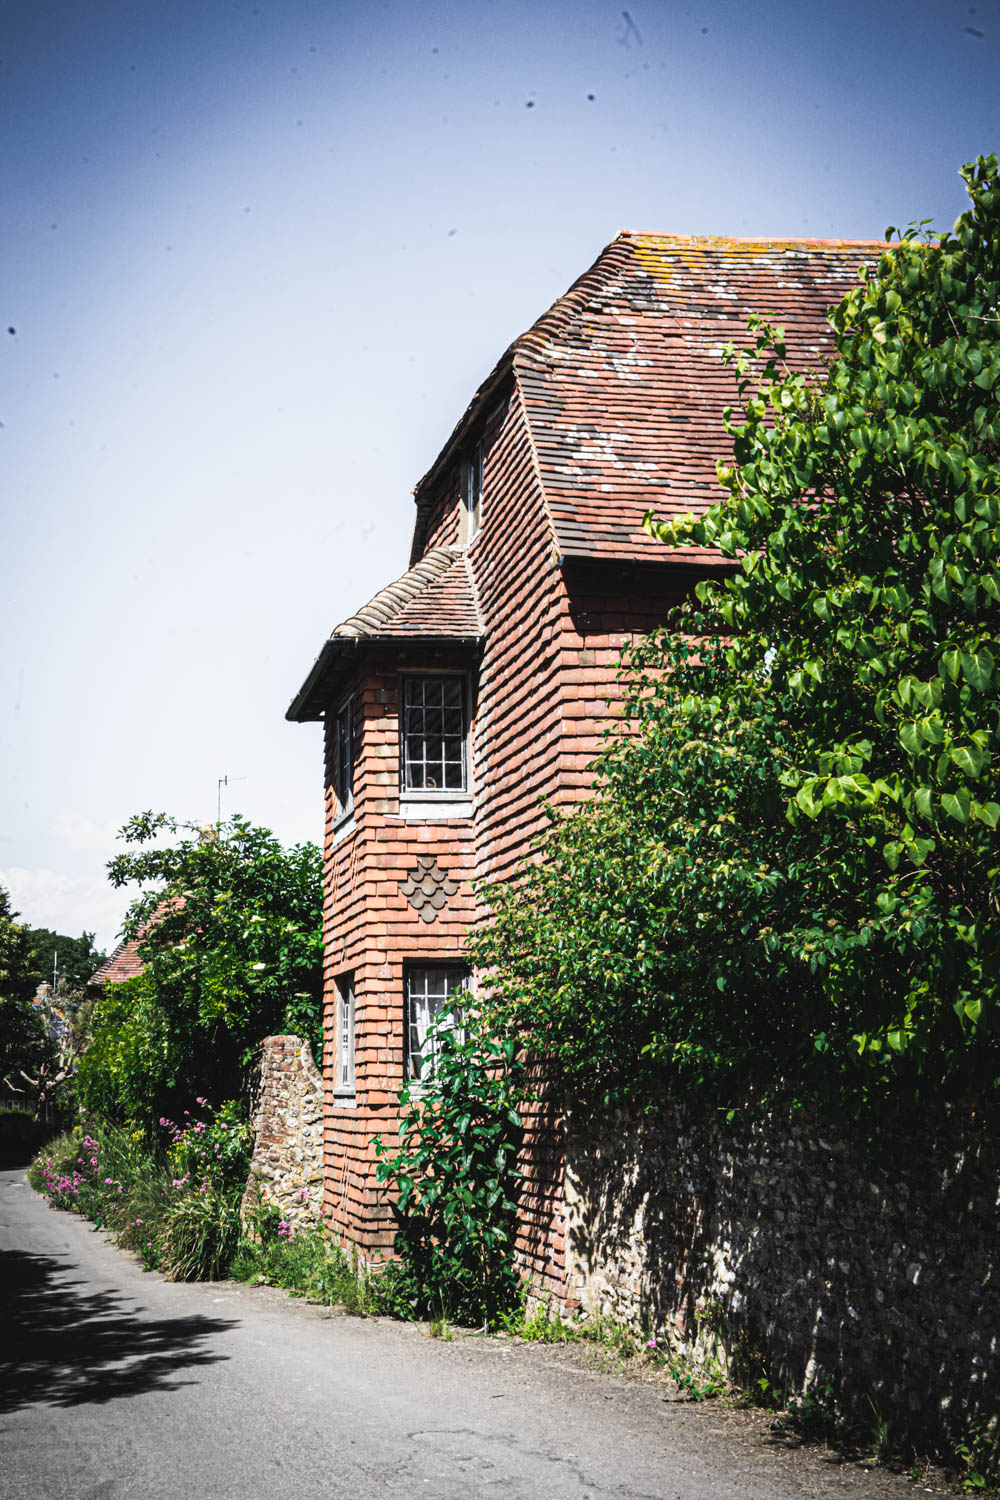 Monk's house-Rodmell-East-Sussex.jpg